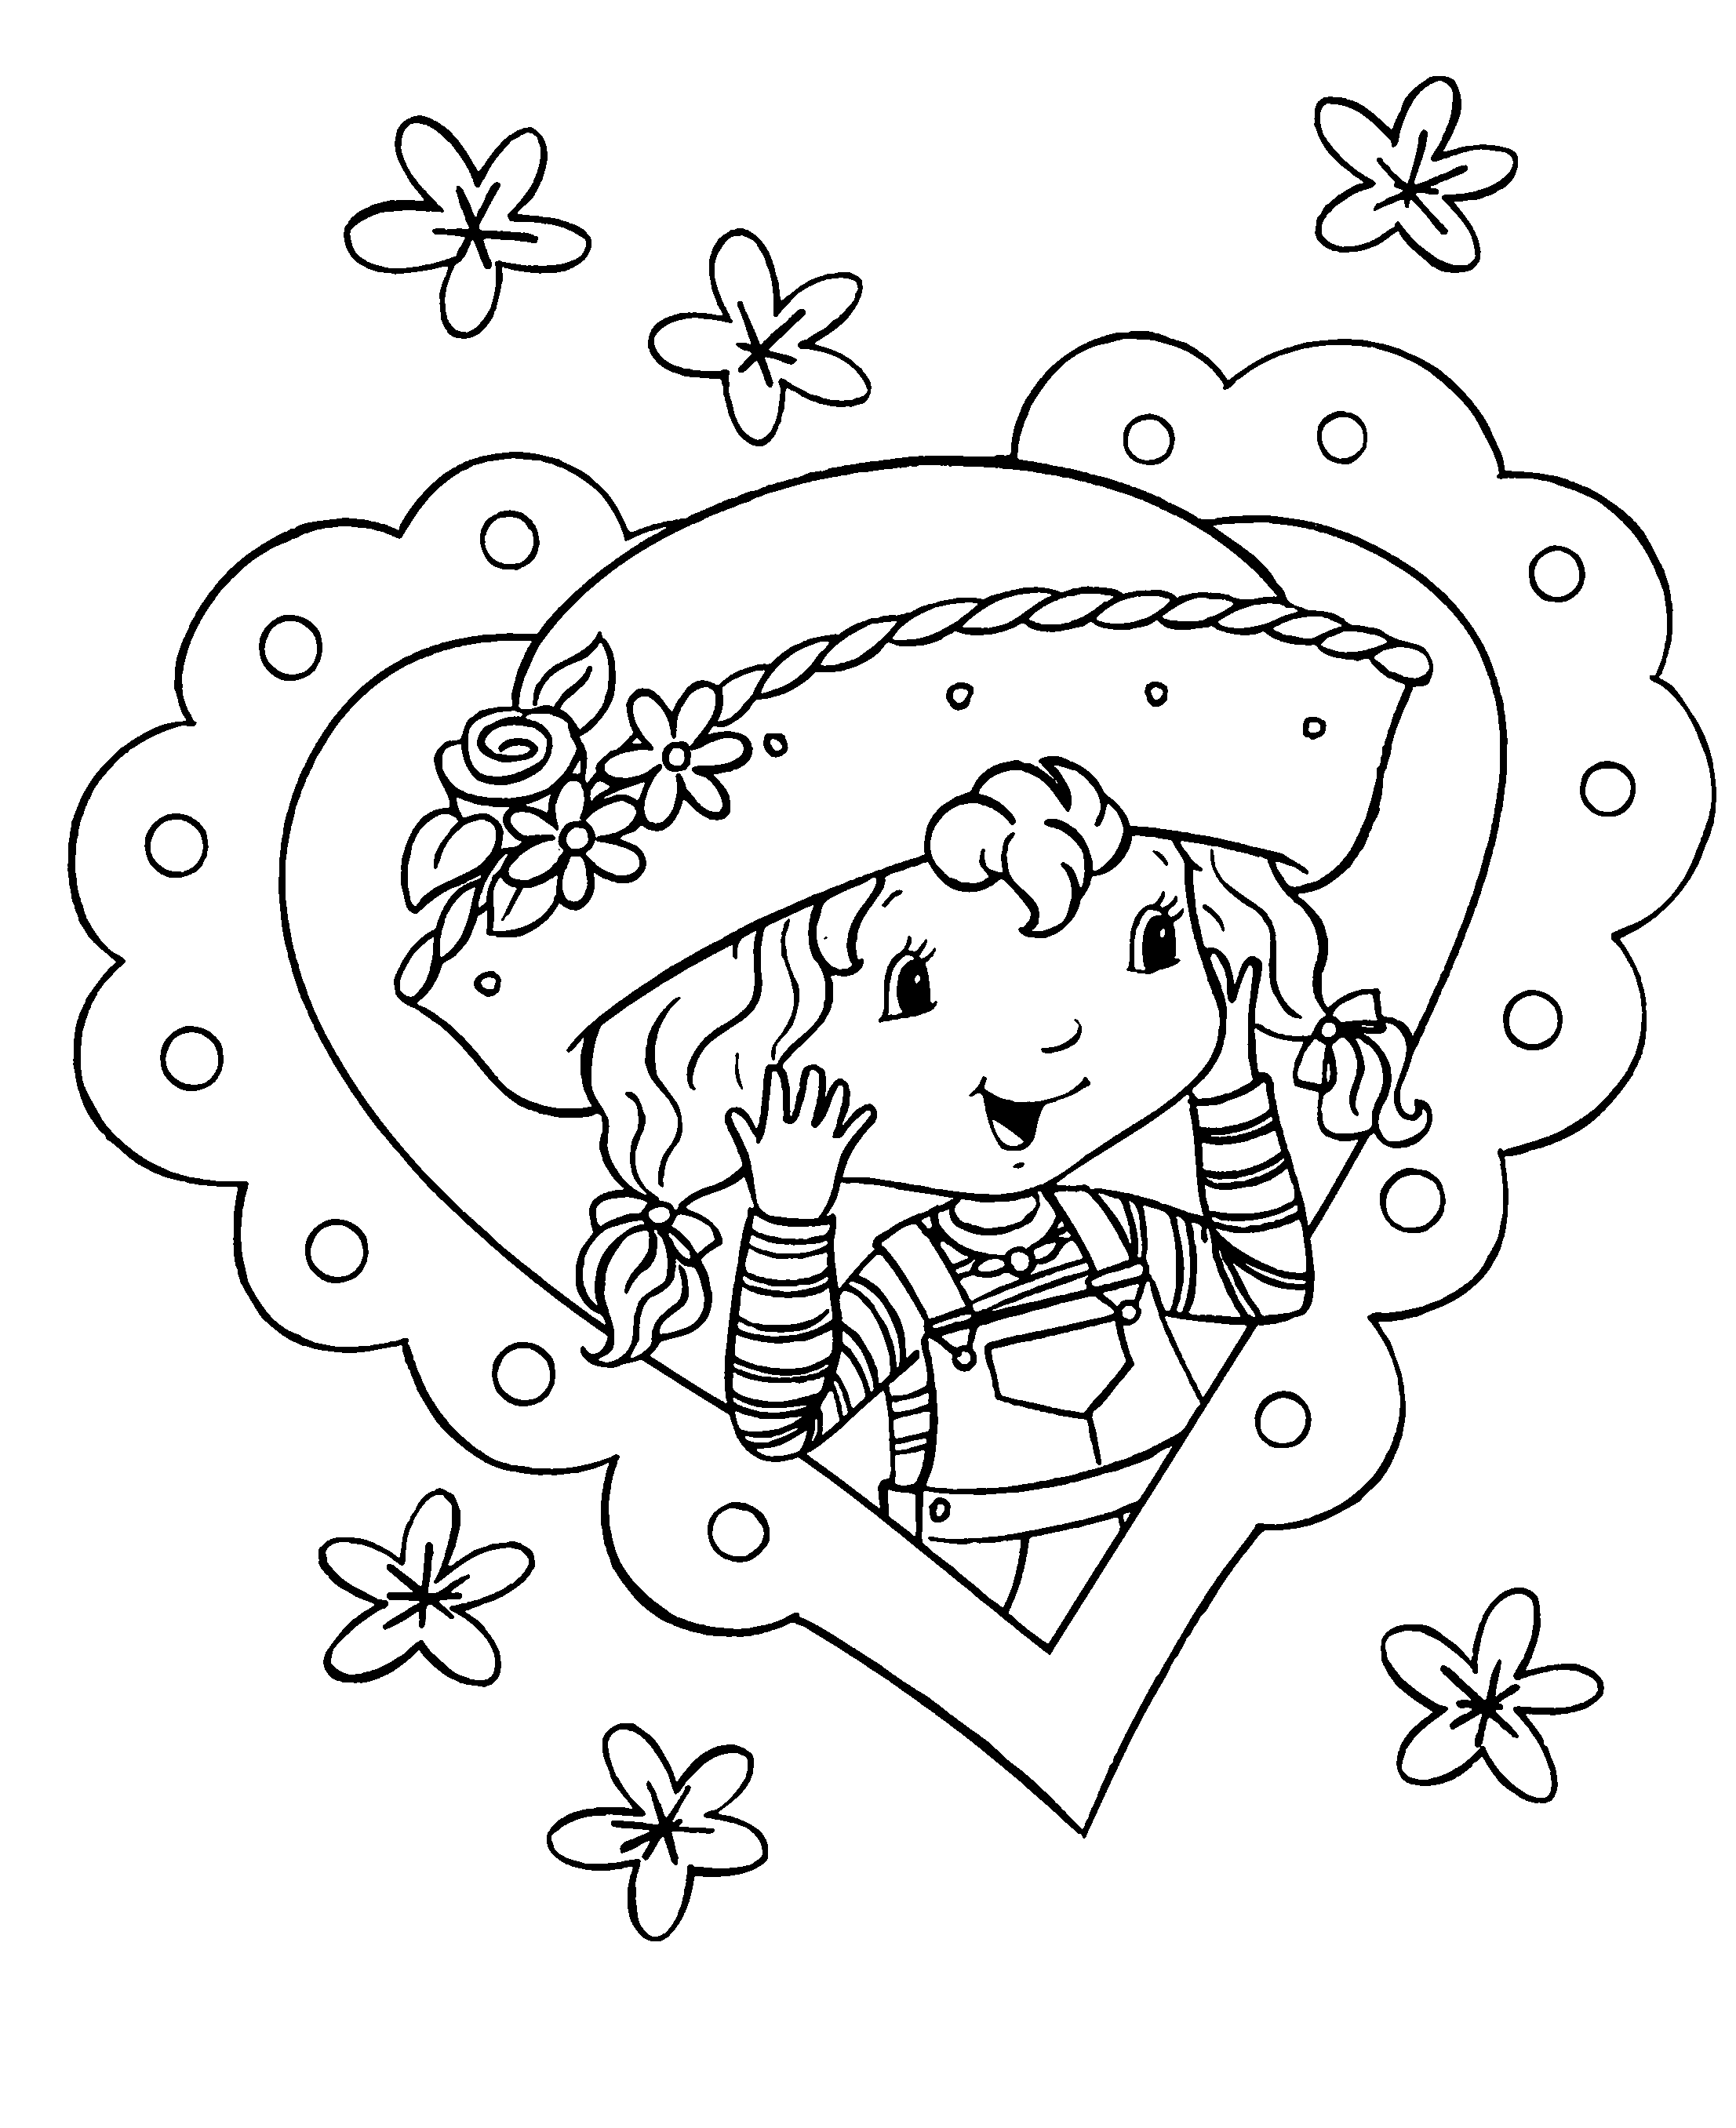 strawberry shortcake coloring pages free printable download